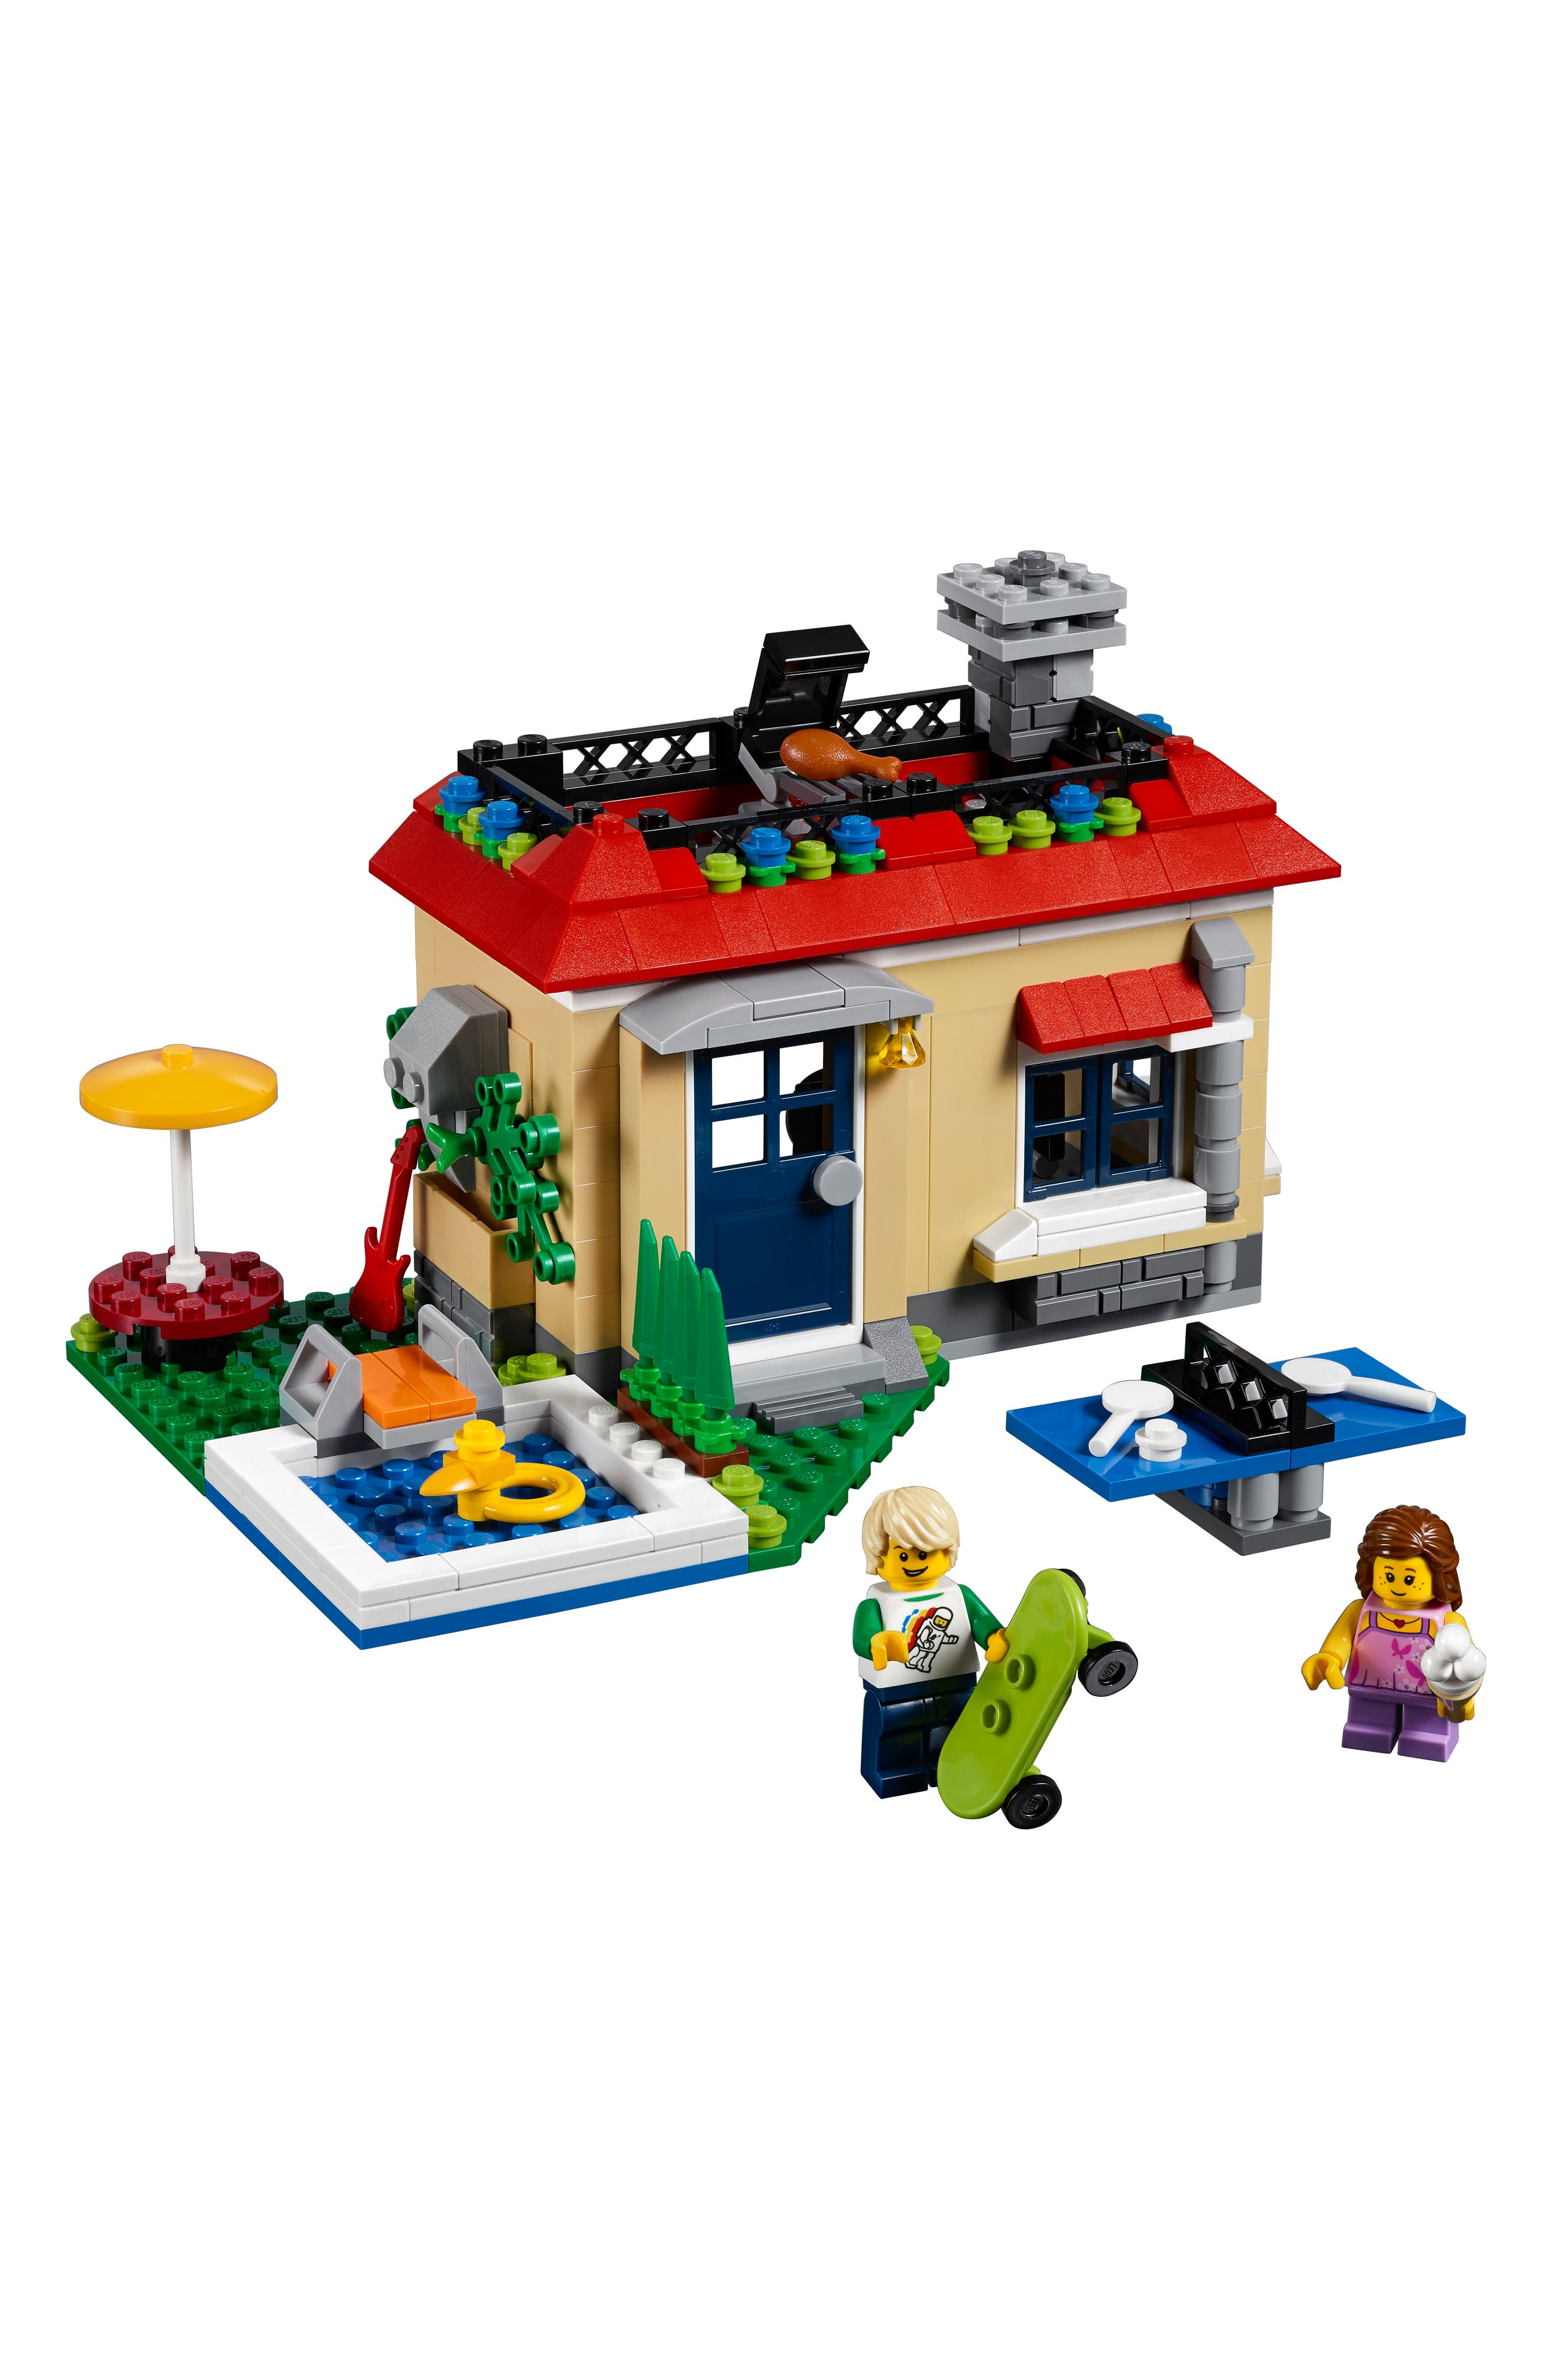 Creator 3-in-1 Modular Poolside Holiday Play Set - 31067,                             Alternate thumbnail 2, color,                             250